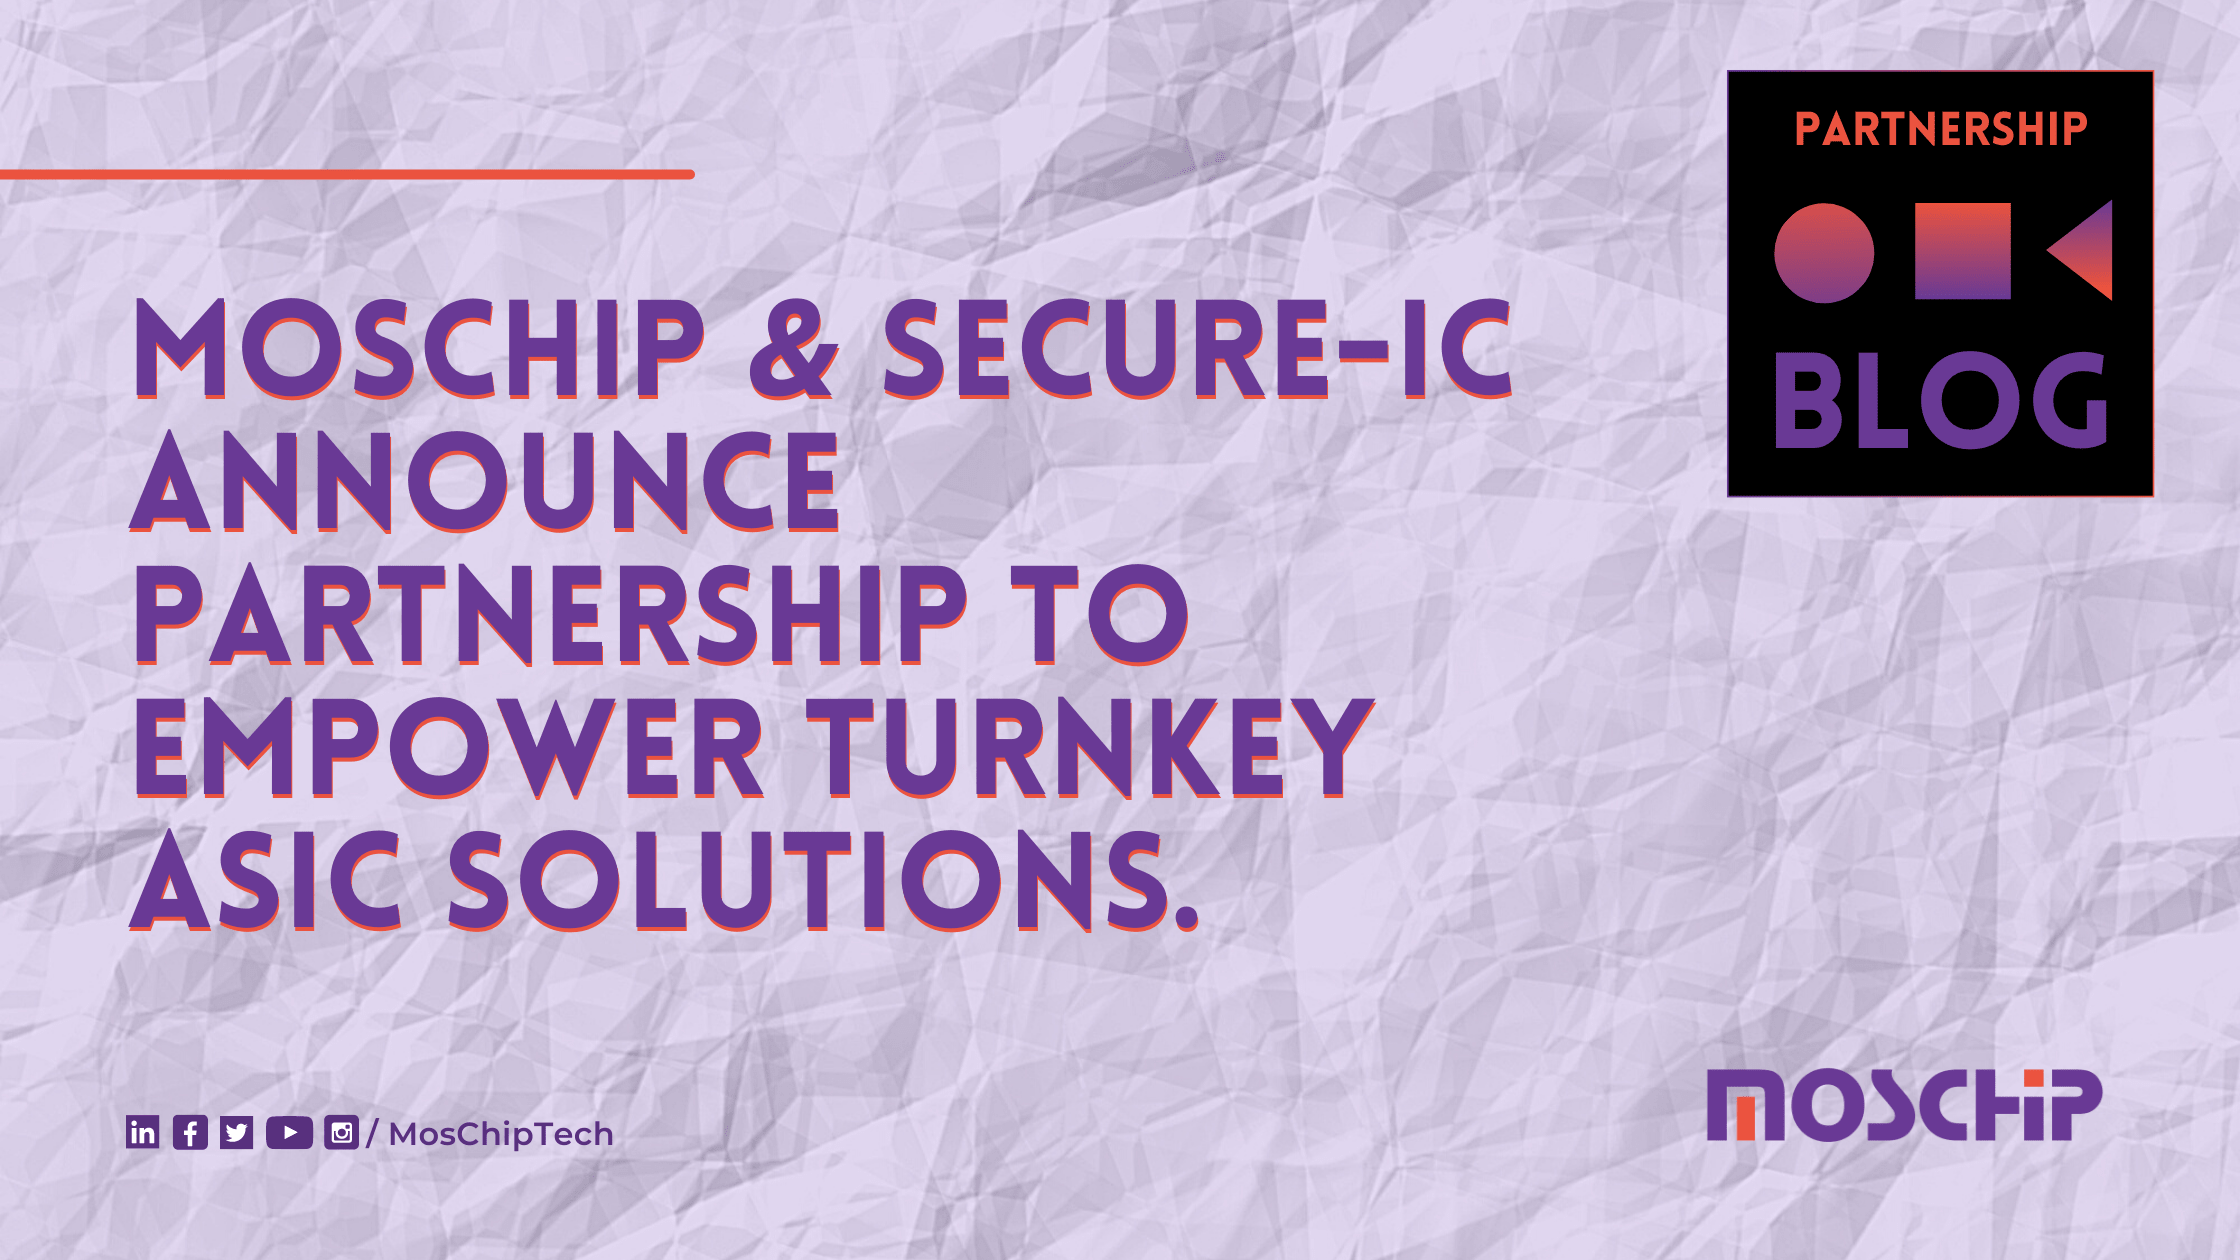 MosChip & Secure-IC Announce Partnership To empower turnkey ASIC solutions_Blog